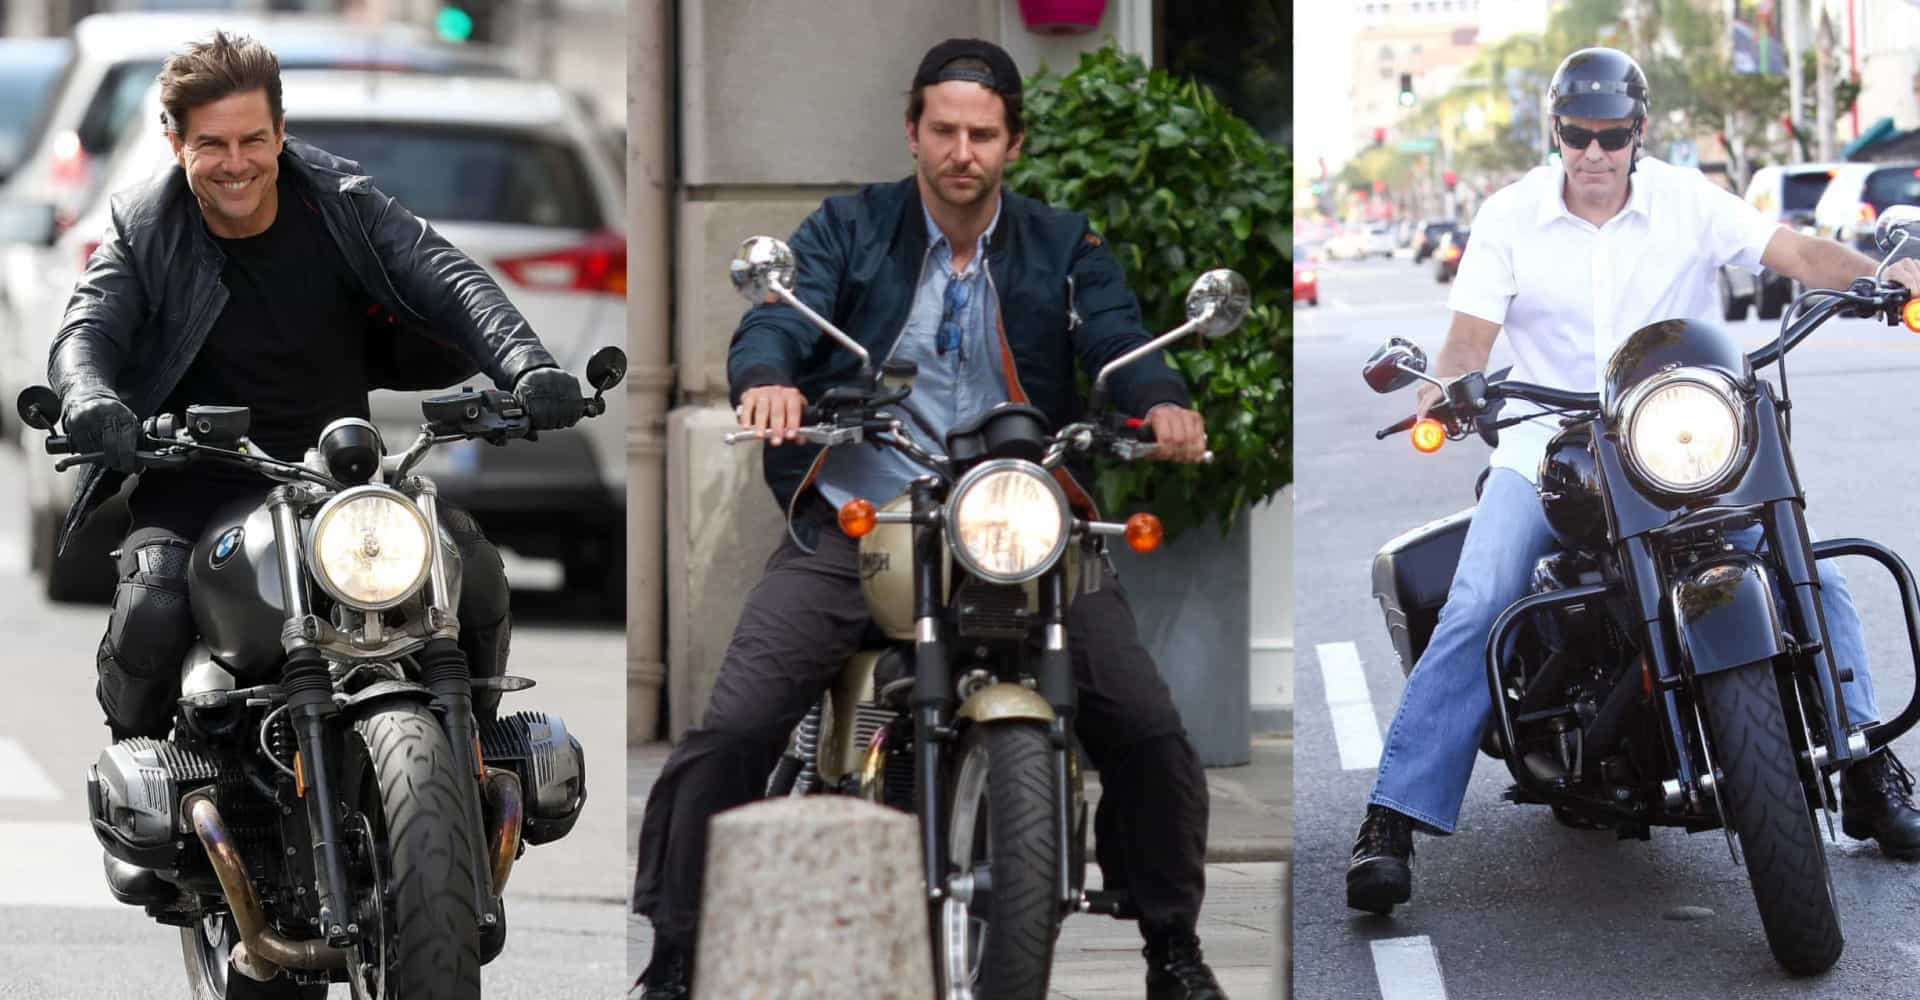 Celebs you didn't know are bikers